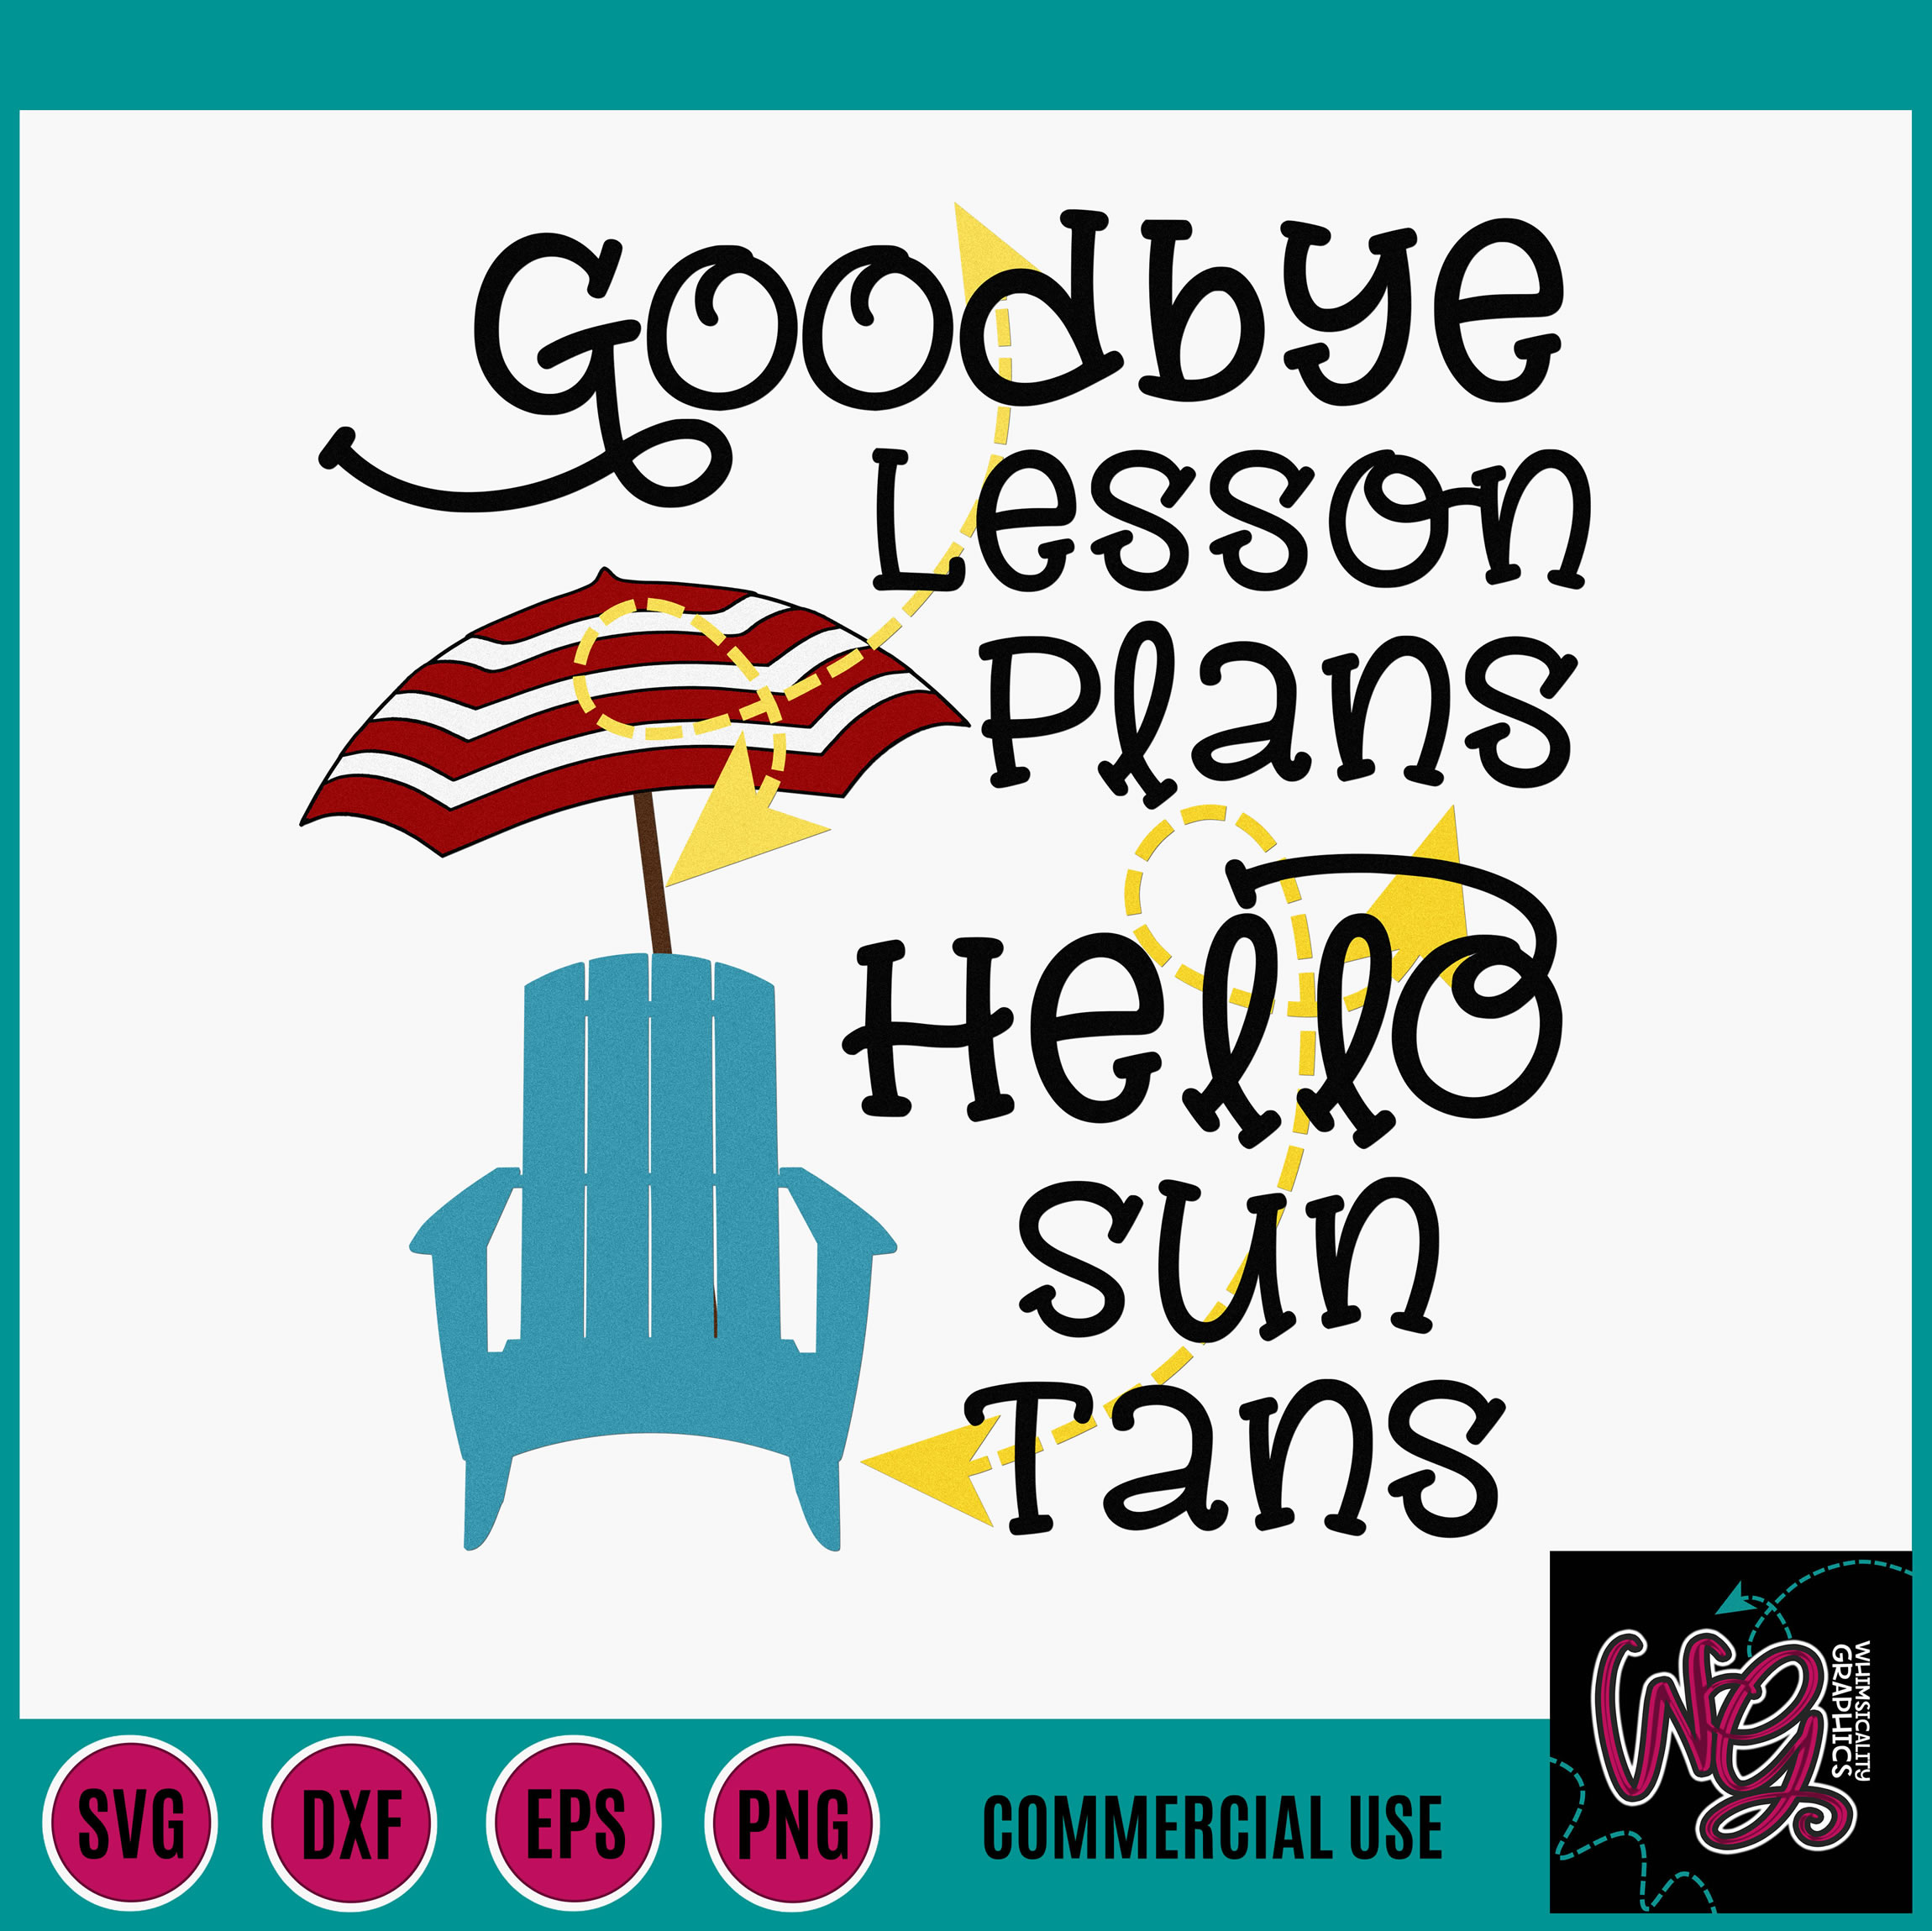 Goodbye Lesson Plans Teacher School SVG DXF PNG EPS Comm example image 2